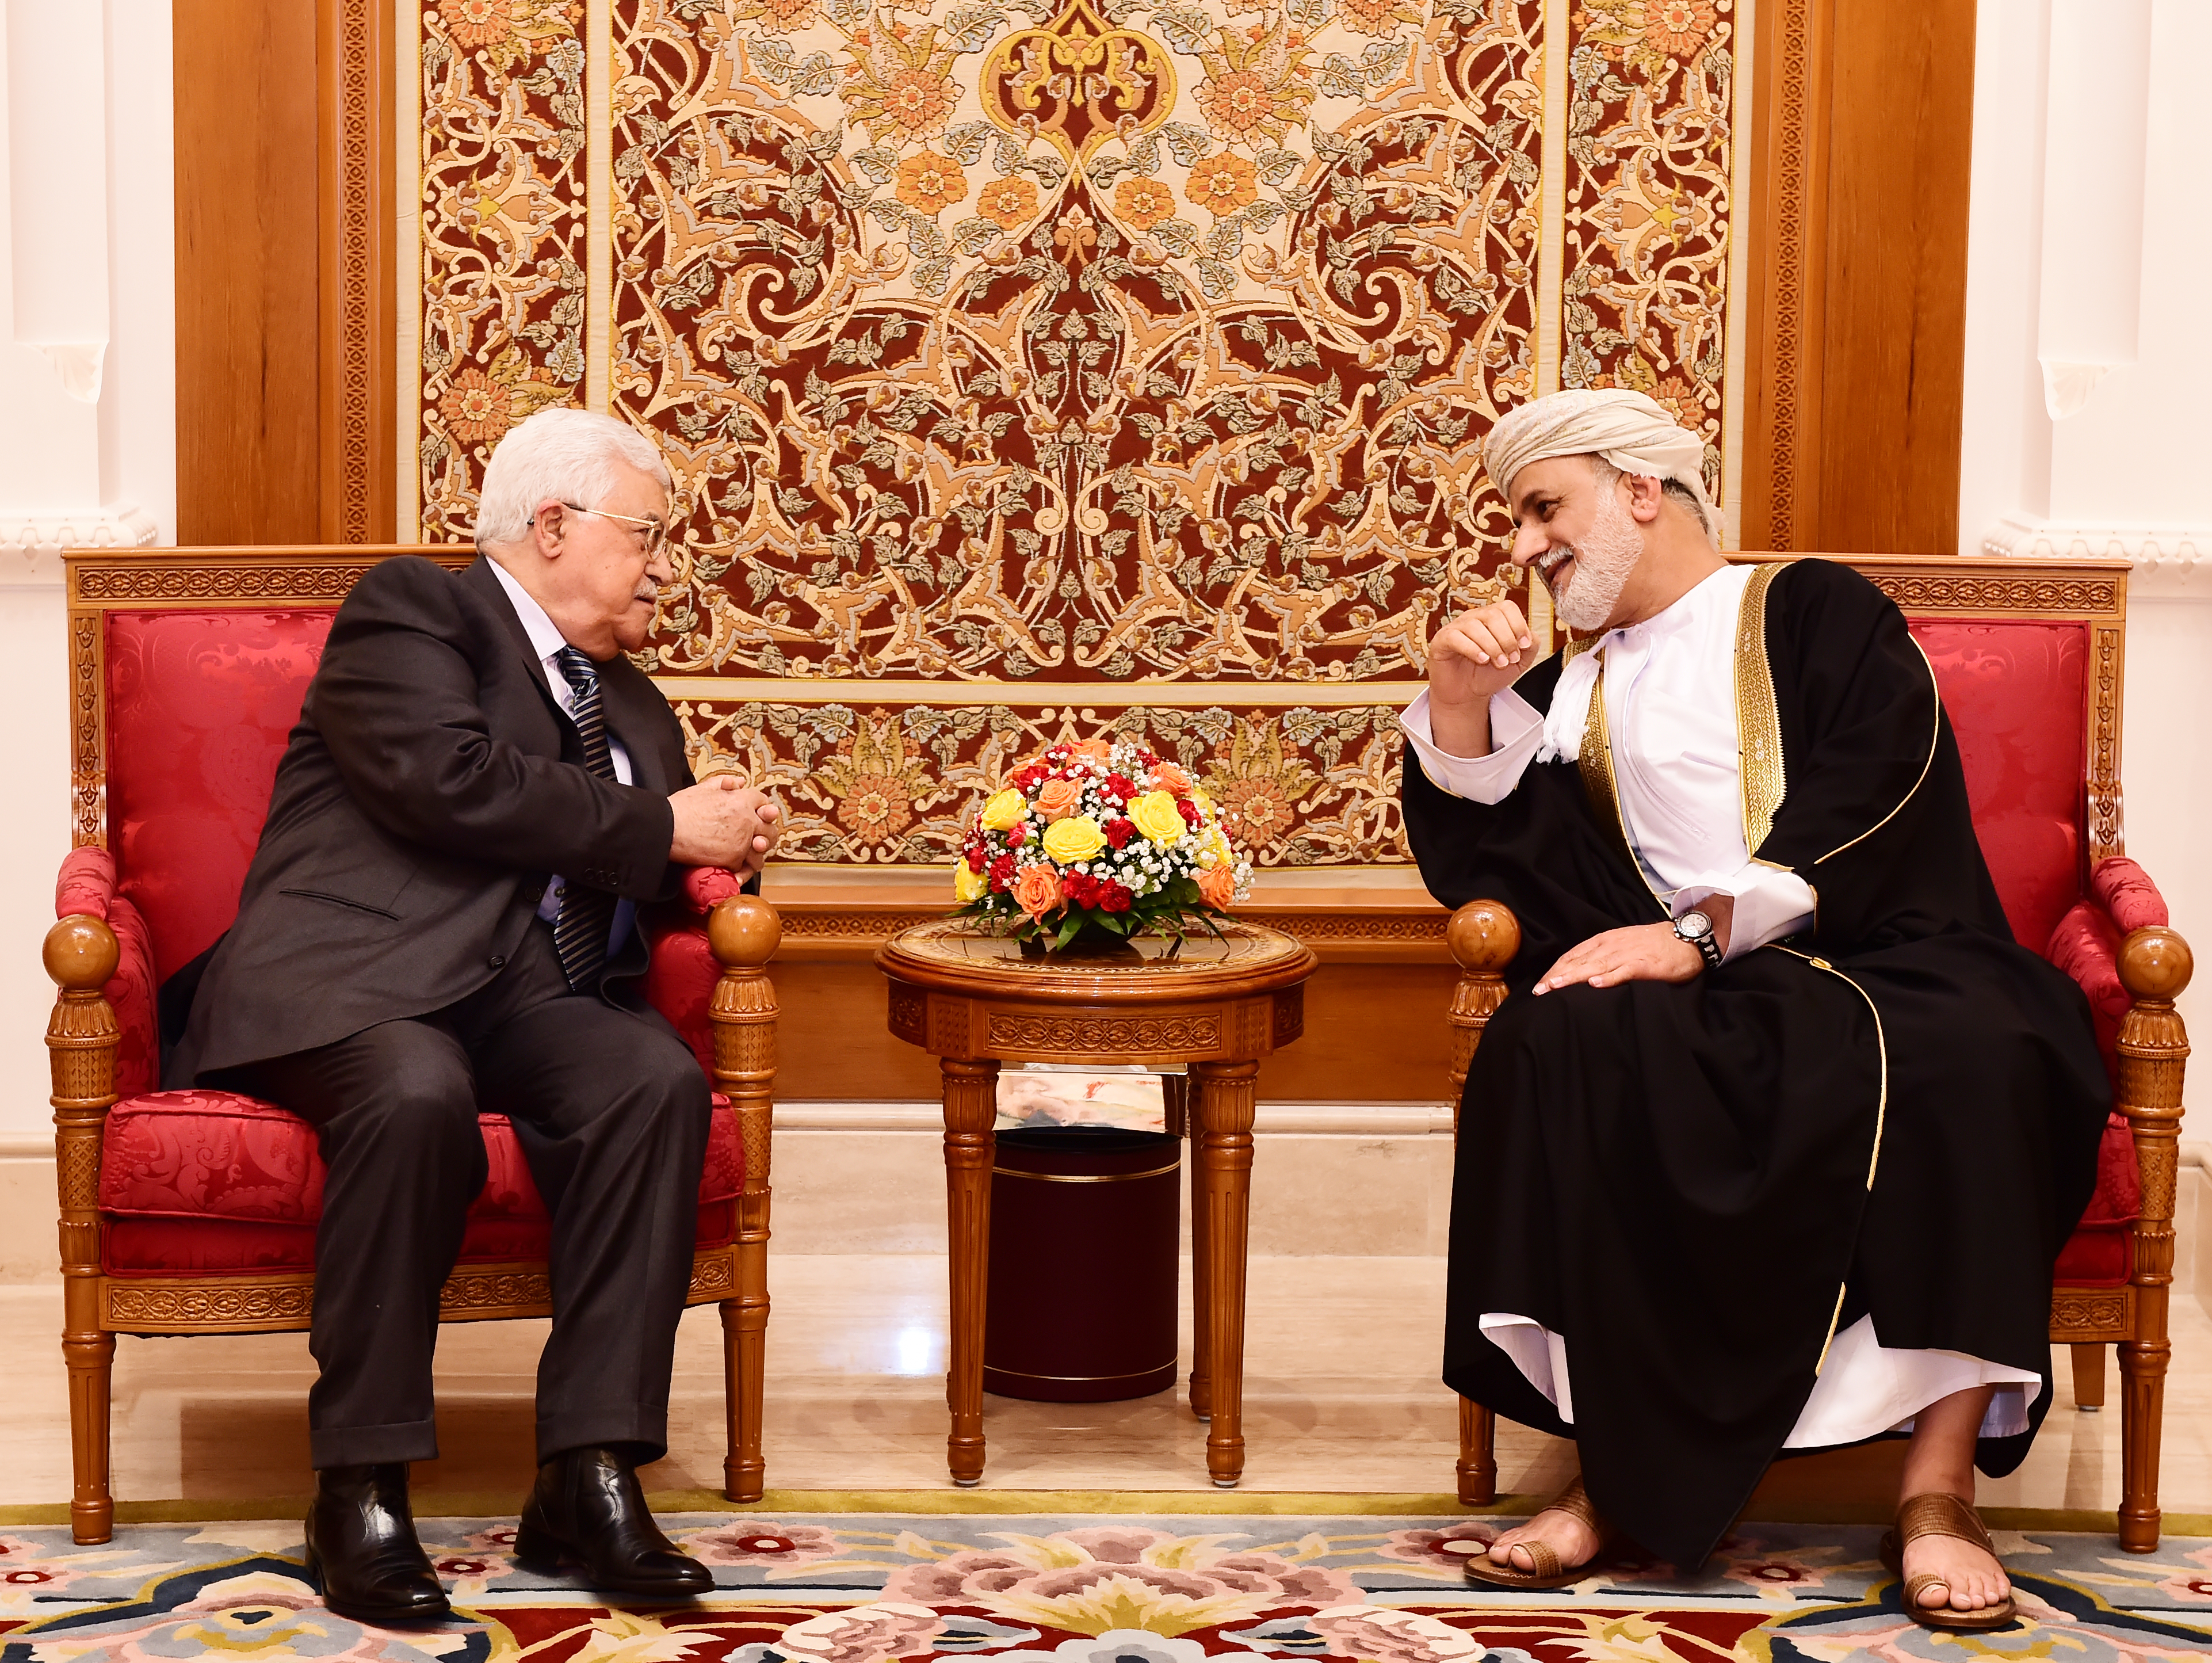 Palestinian President Abbas arrives in Oman on a two-day visit